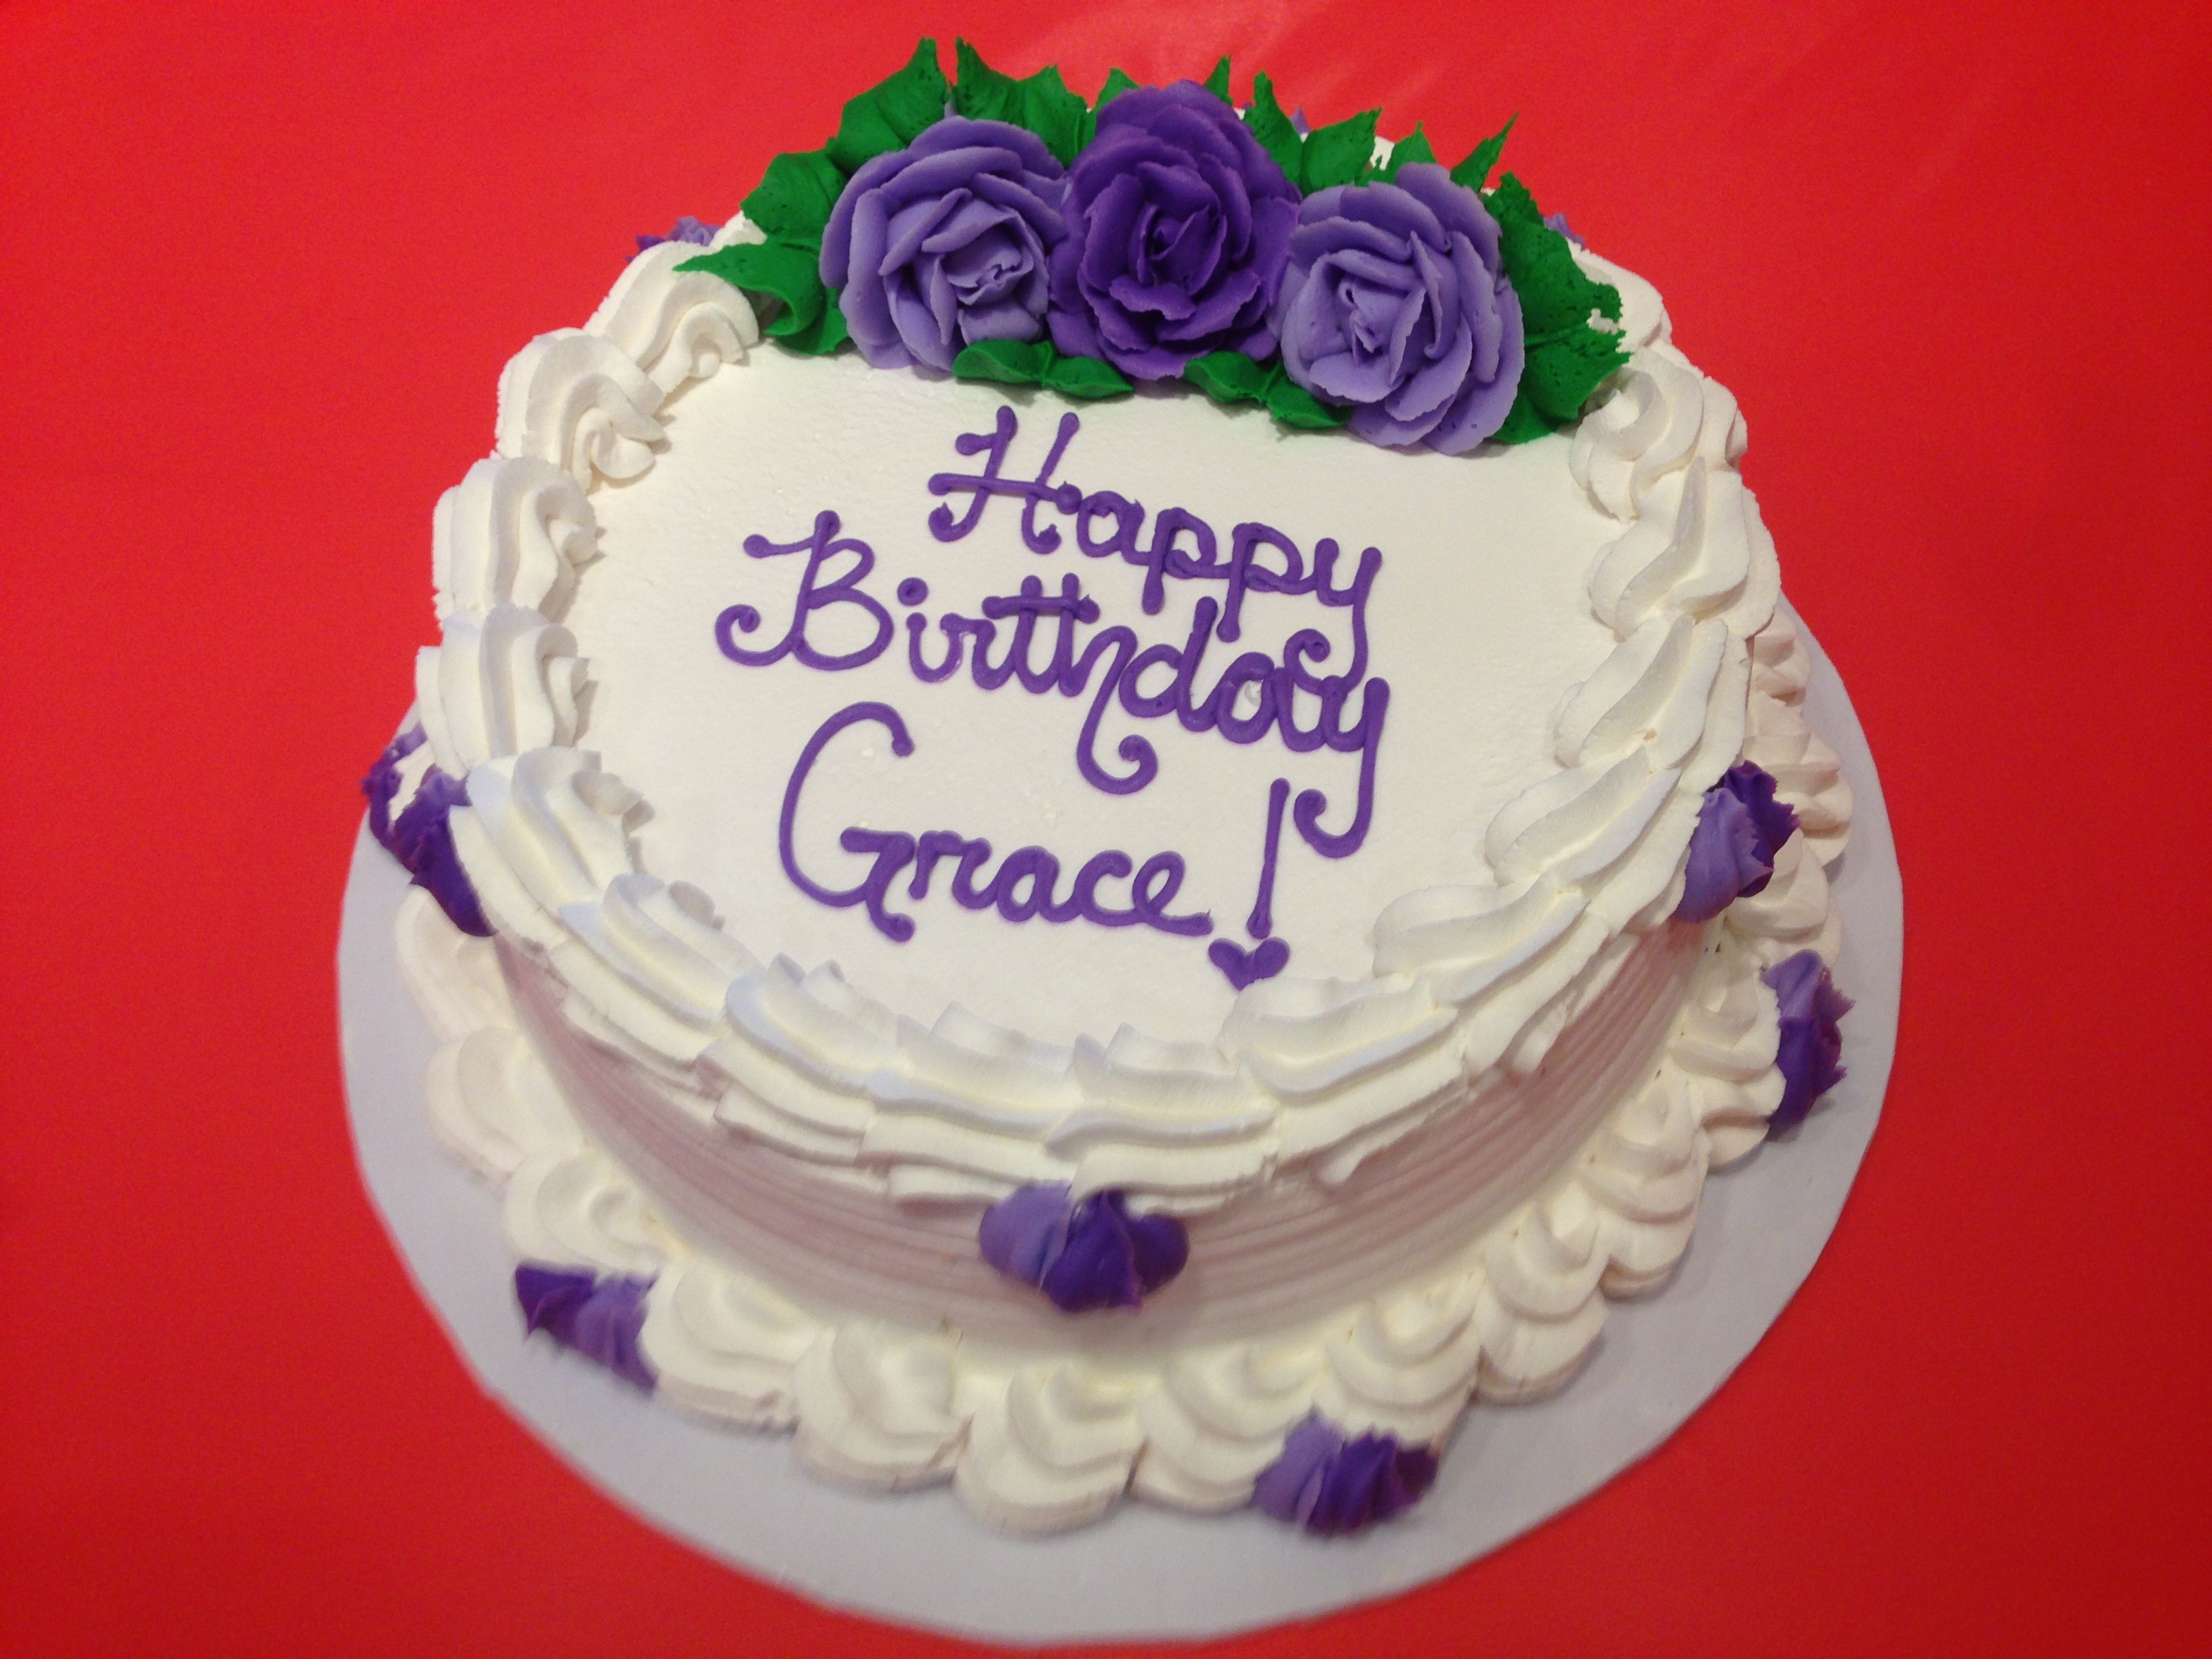 Cake Decorating Buttercream Birthday : Grace s buttercream birthday cake! 60th bday Pinterest